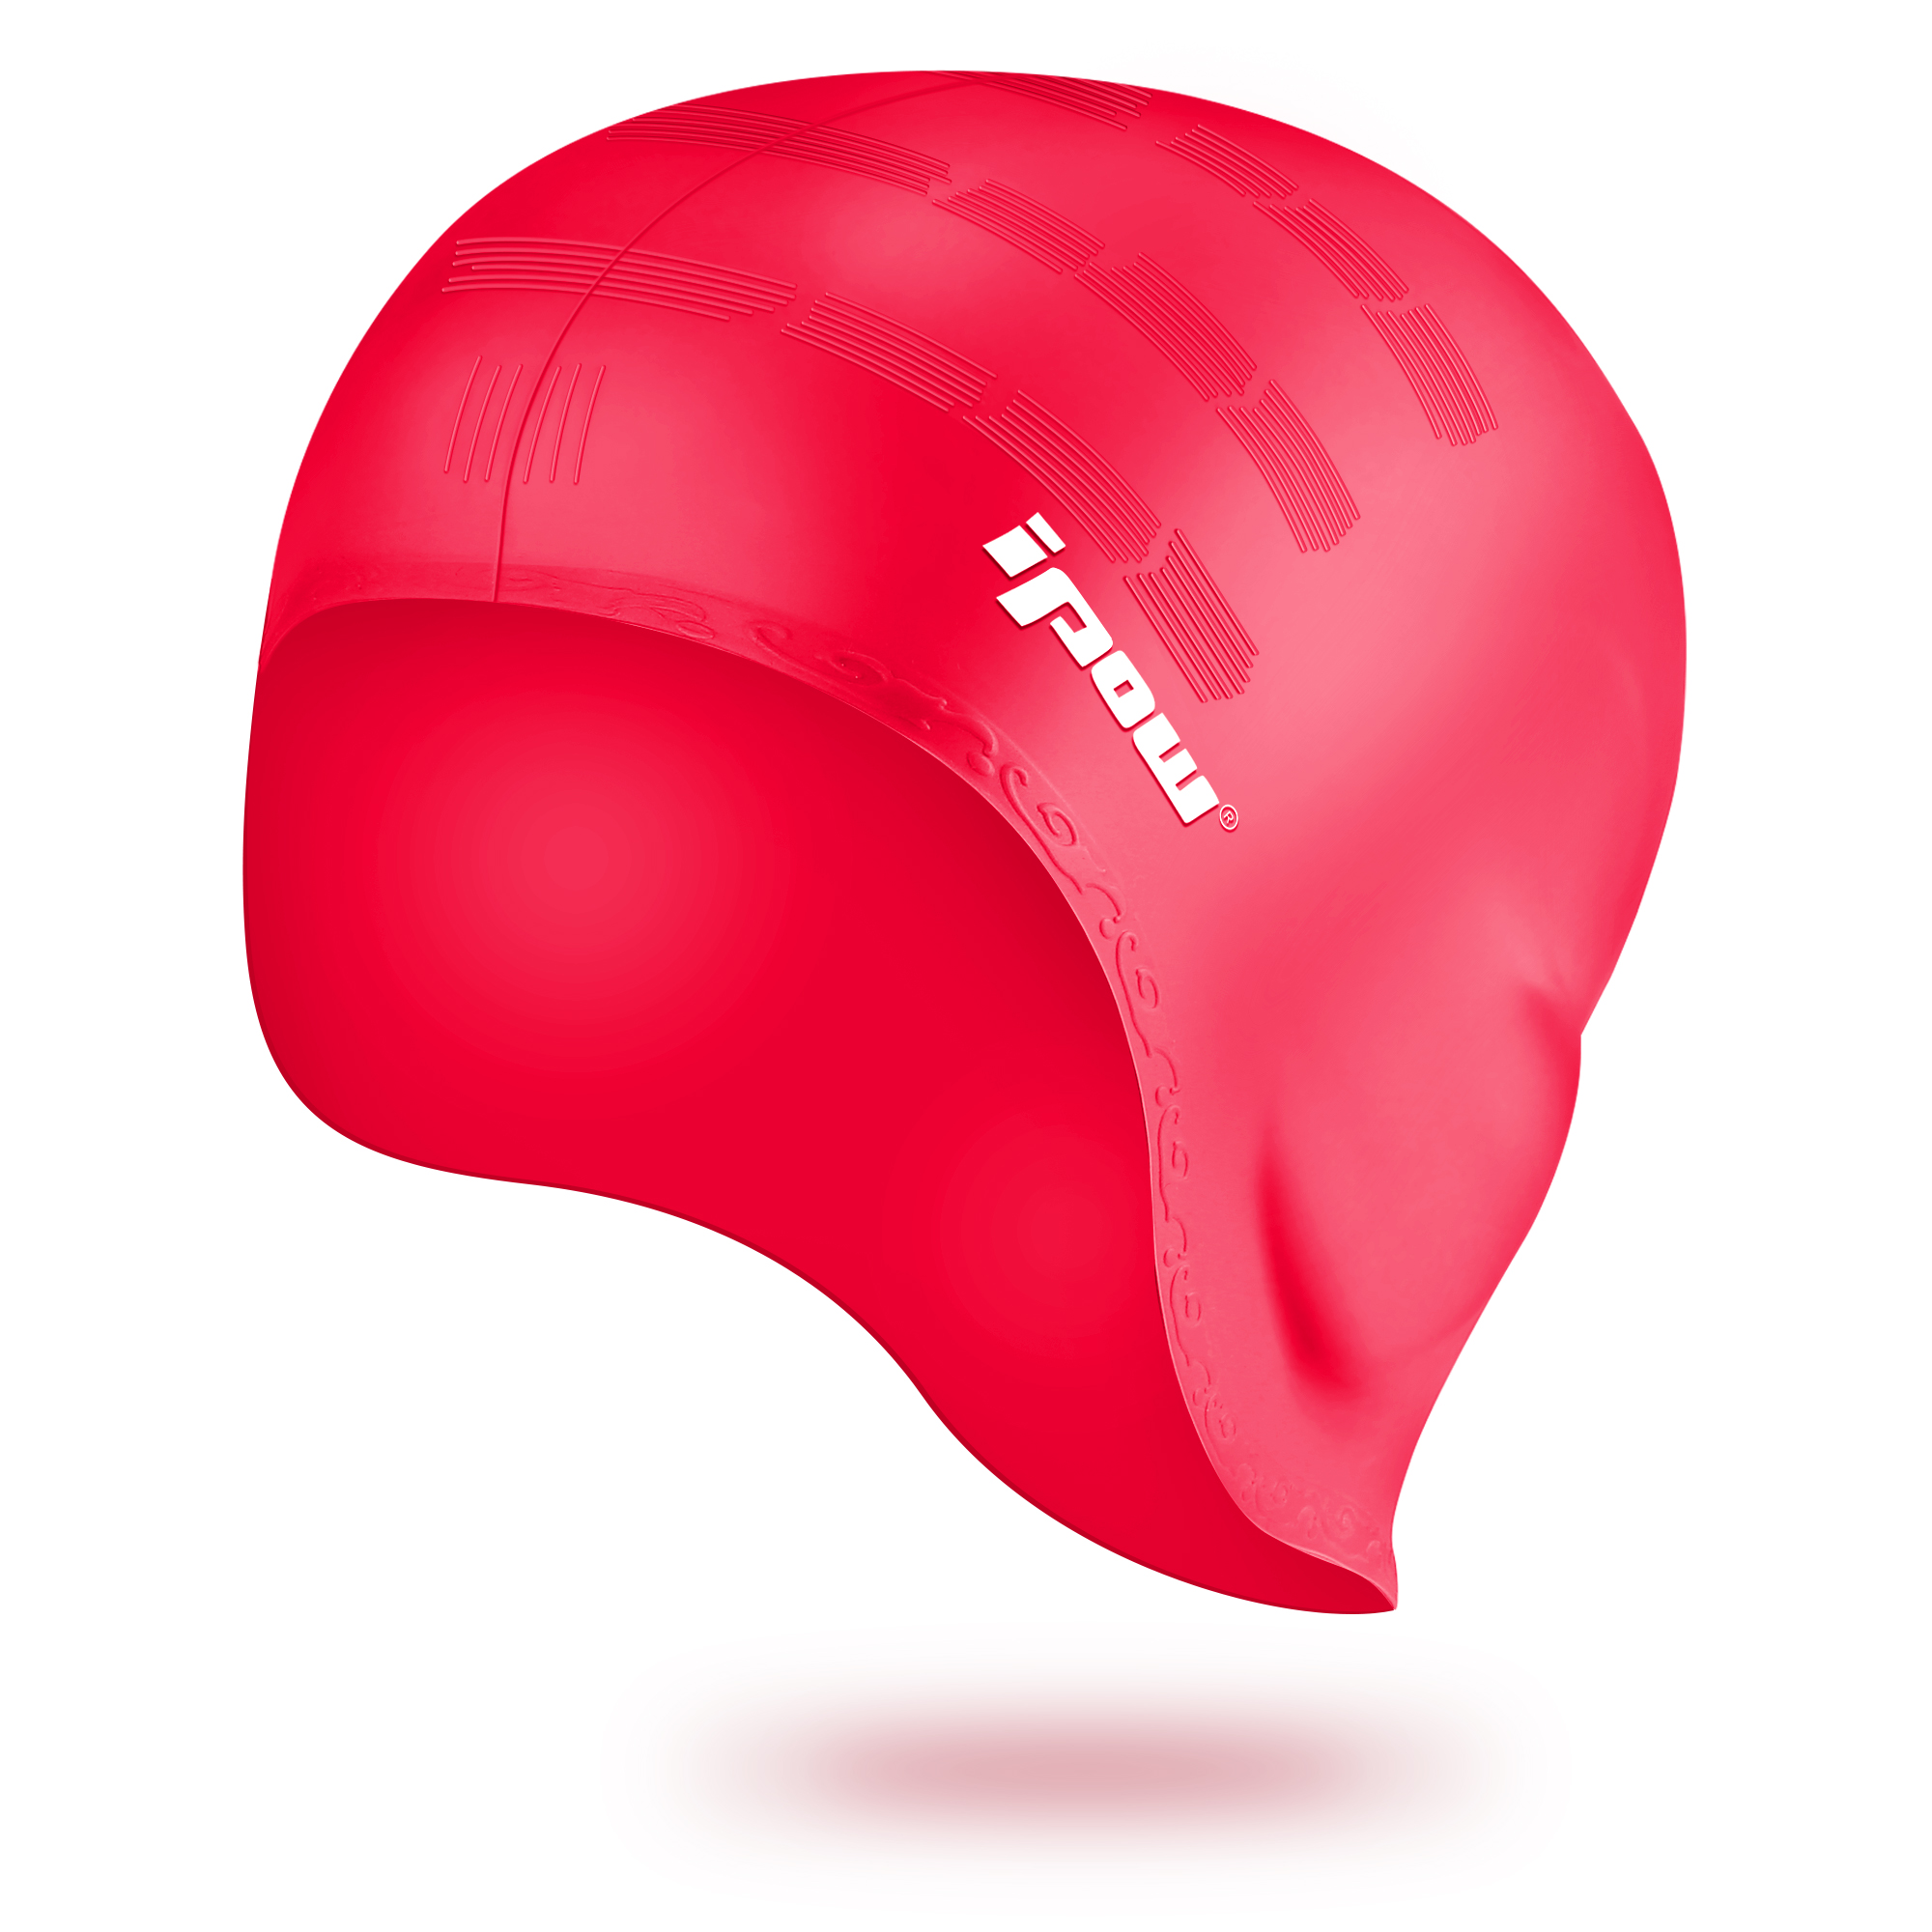 Waterproof Silicone Swimming Cap-IPOW Over the Ear Swim Hat Cap Stretchy for Unisex Adults Men Women Kids Girls Boys, Ideal for Both Long and Short Hair-Red